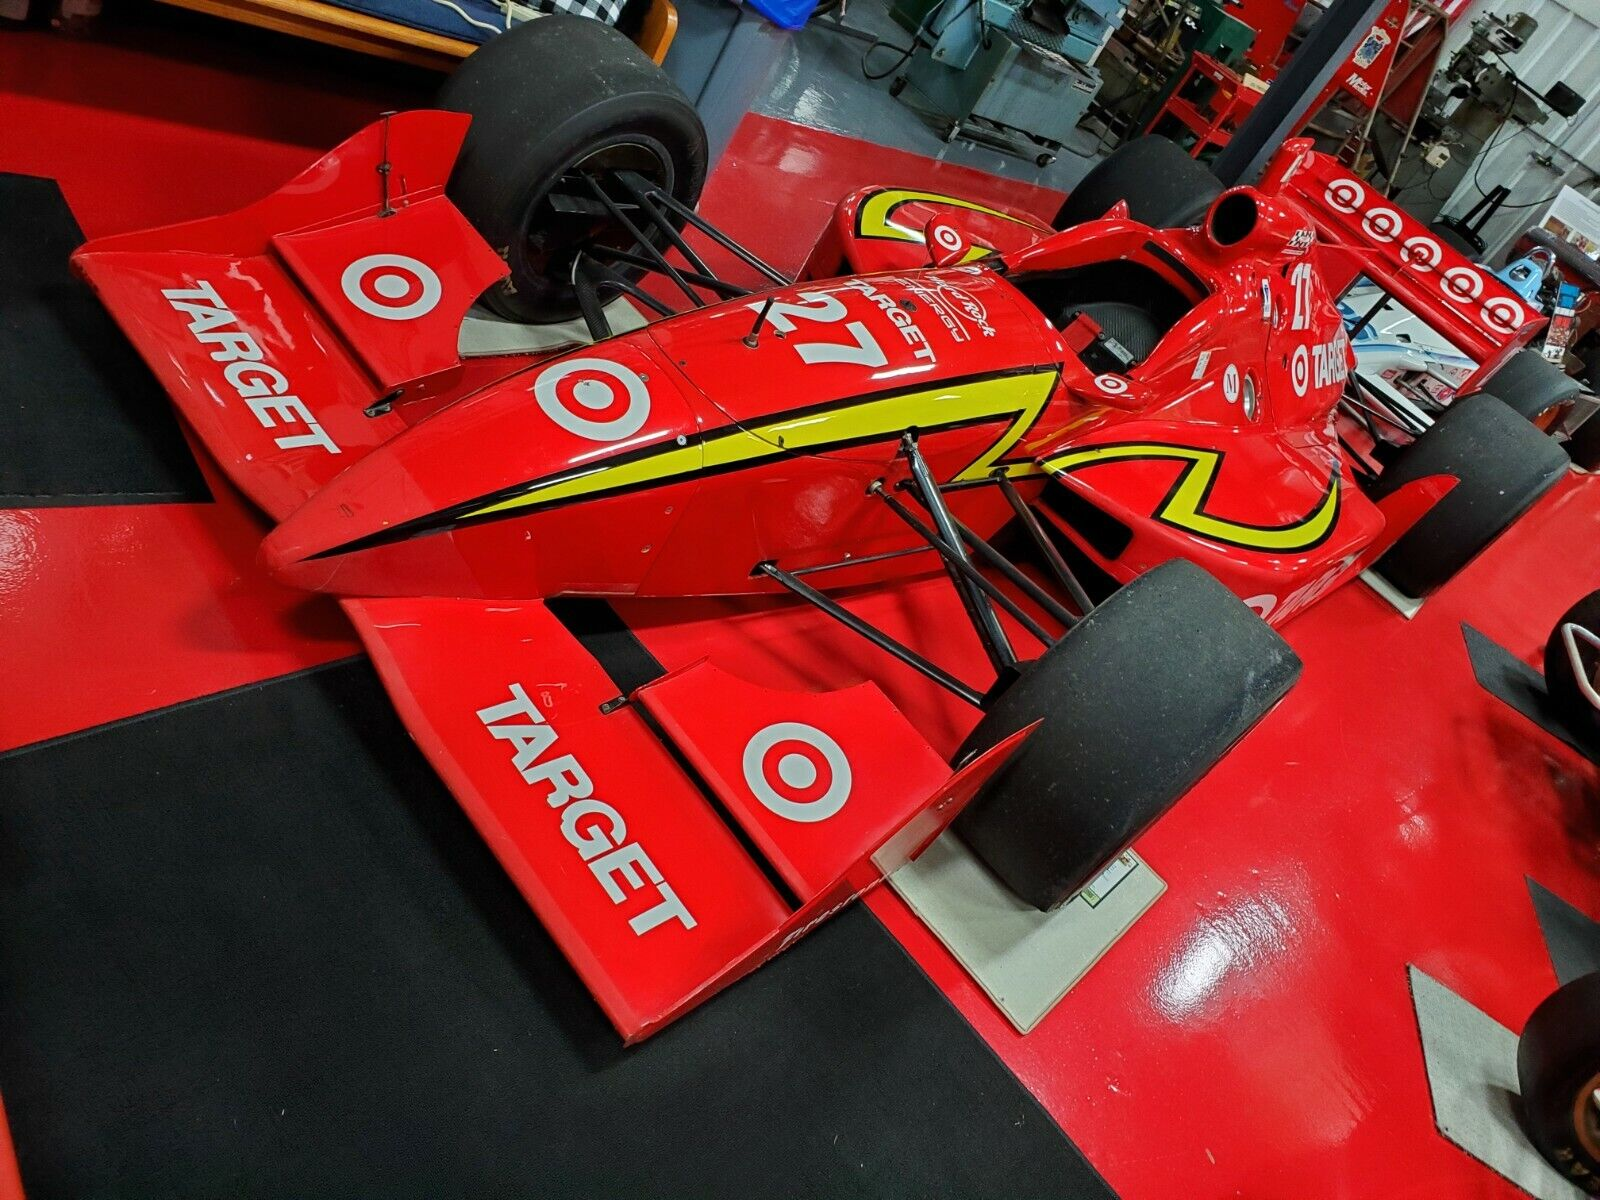 1999 Dallara Indycar Complete Track Ready Indy 500 History W/Spares Indianapolis